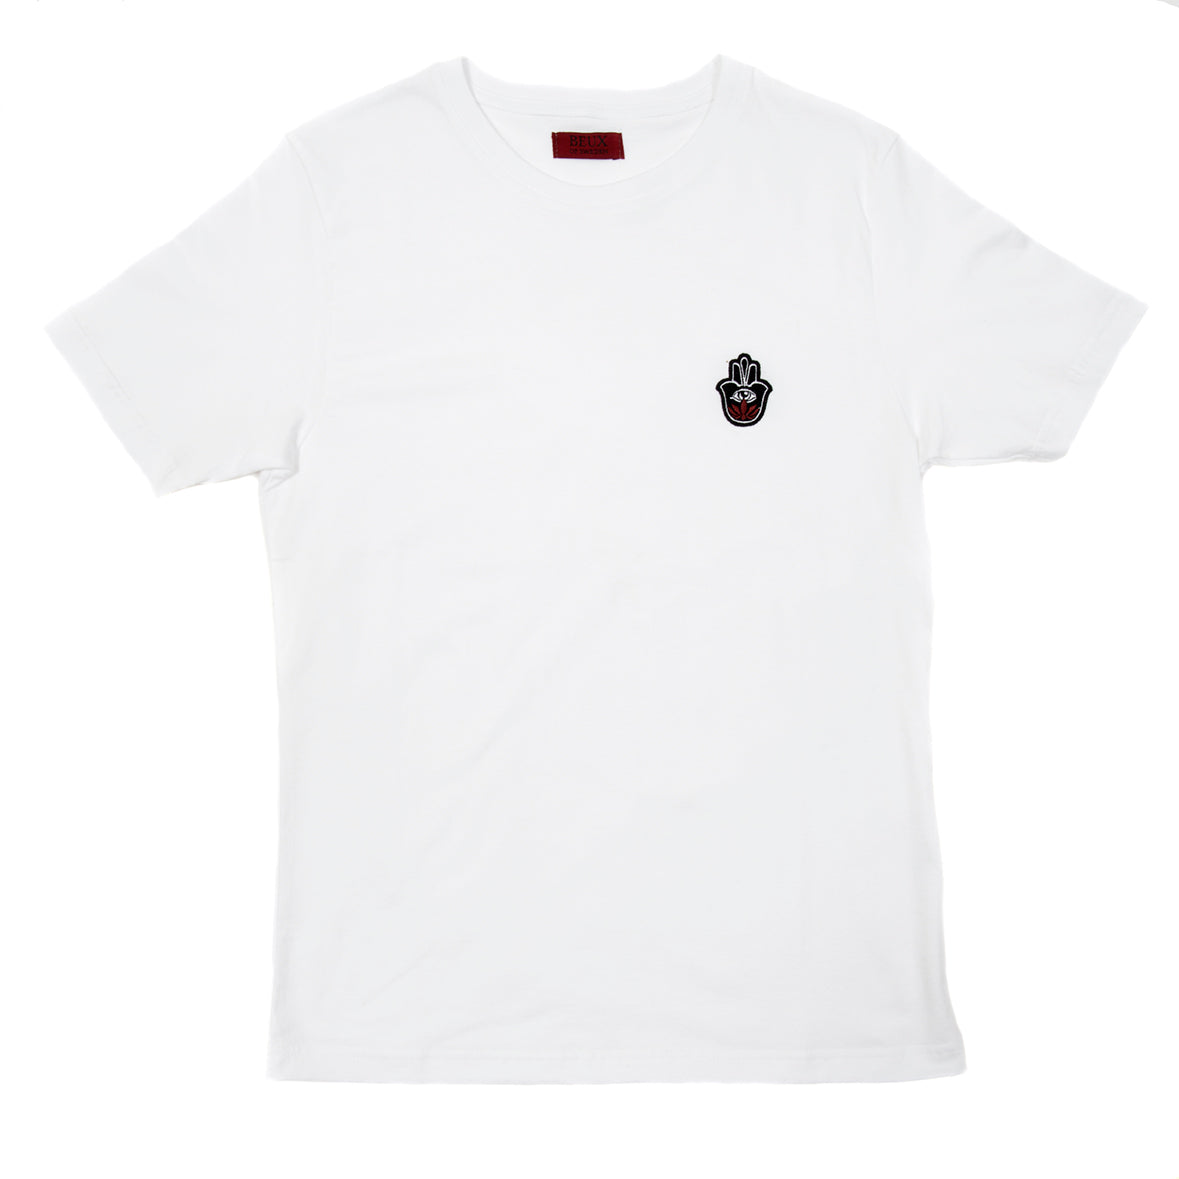 White T-Shirt with embroidered logo